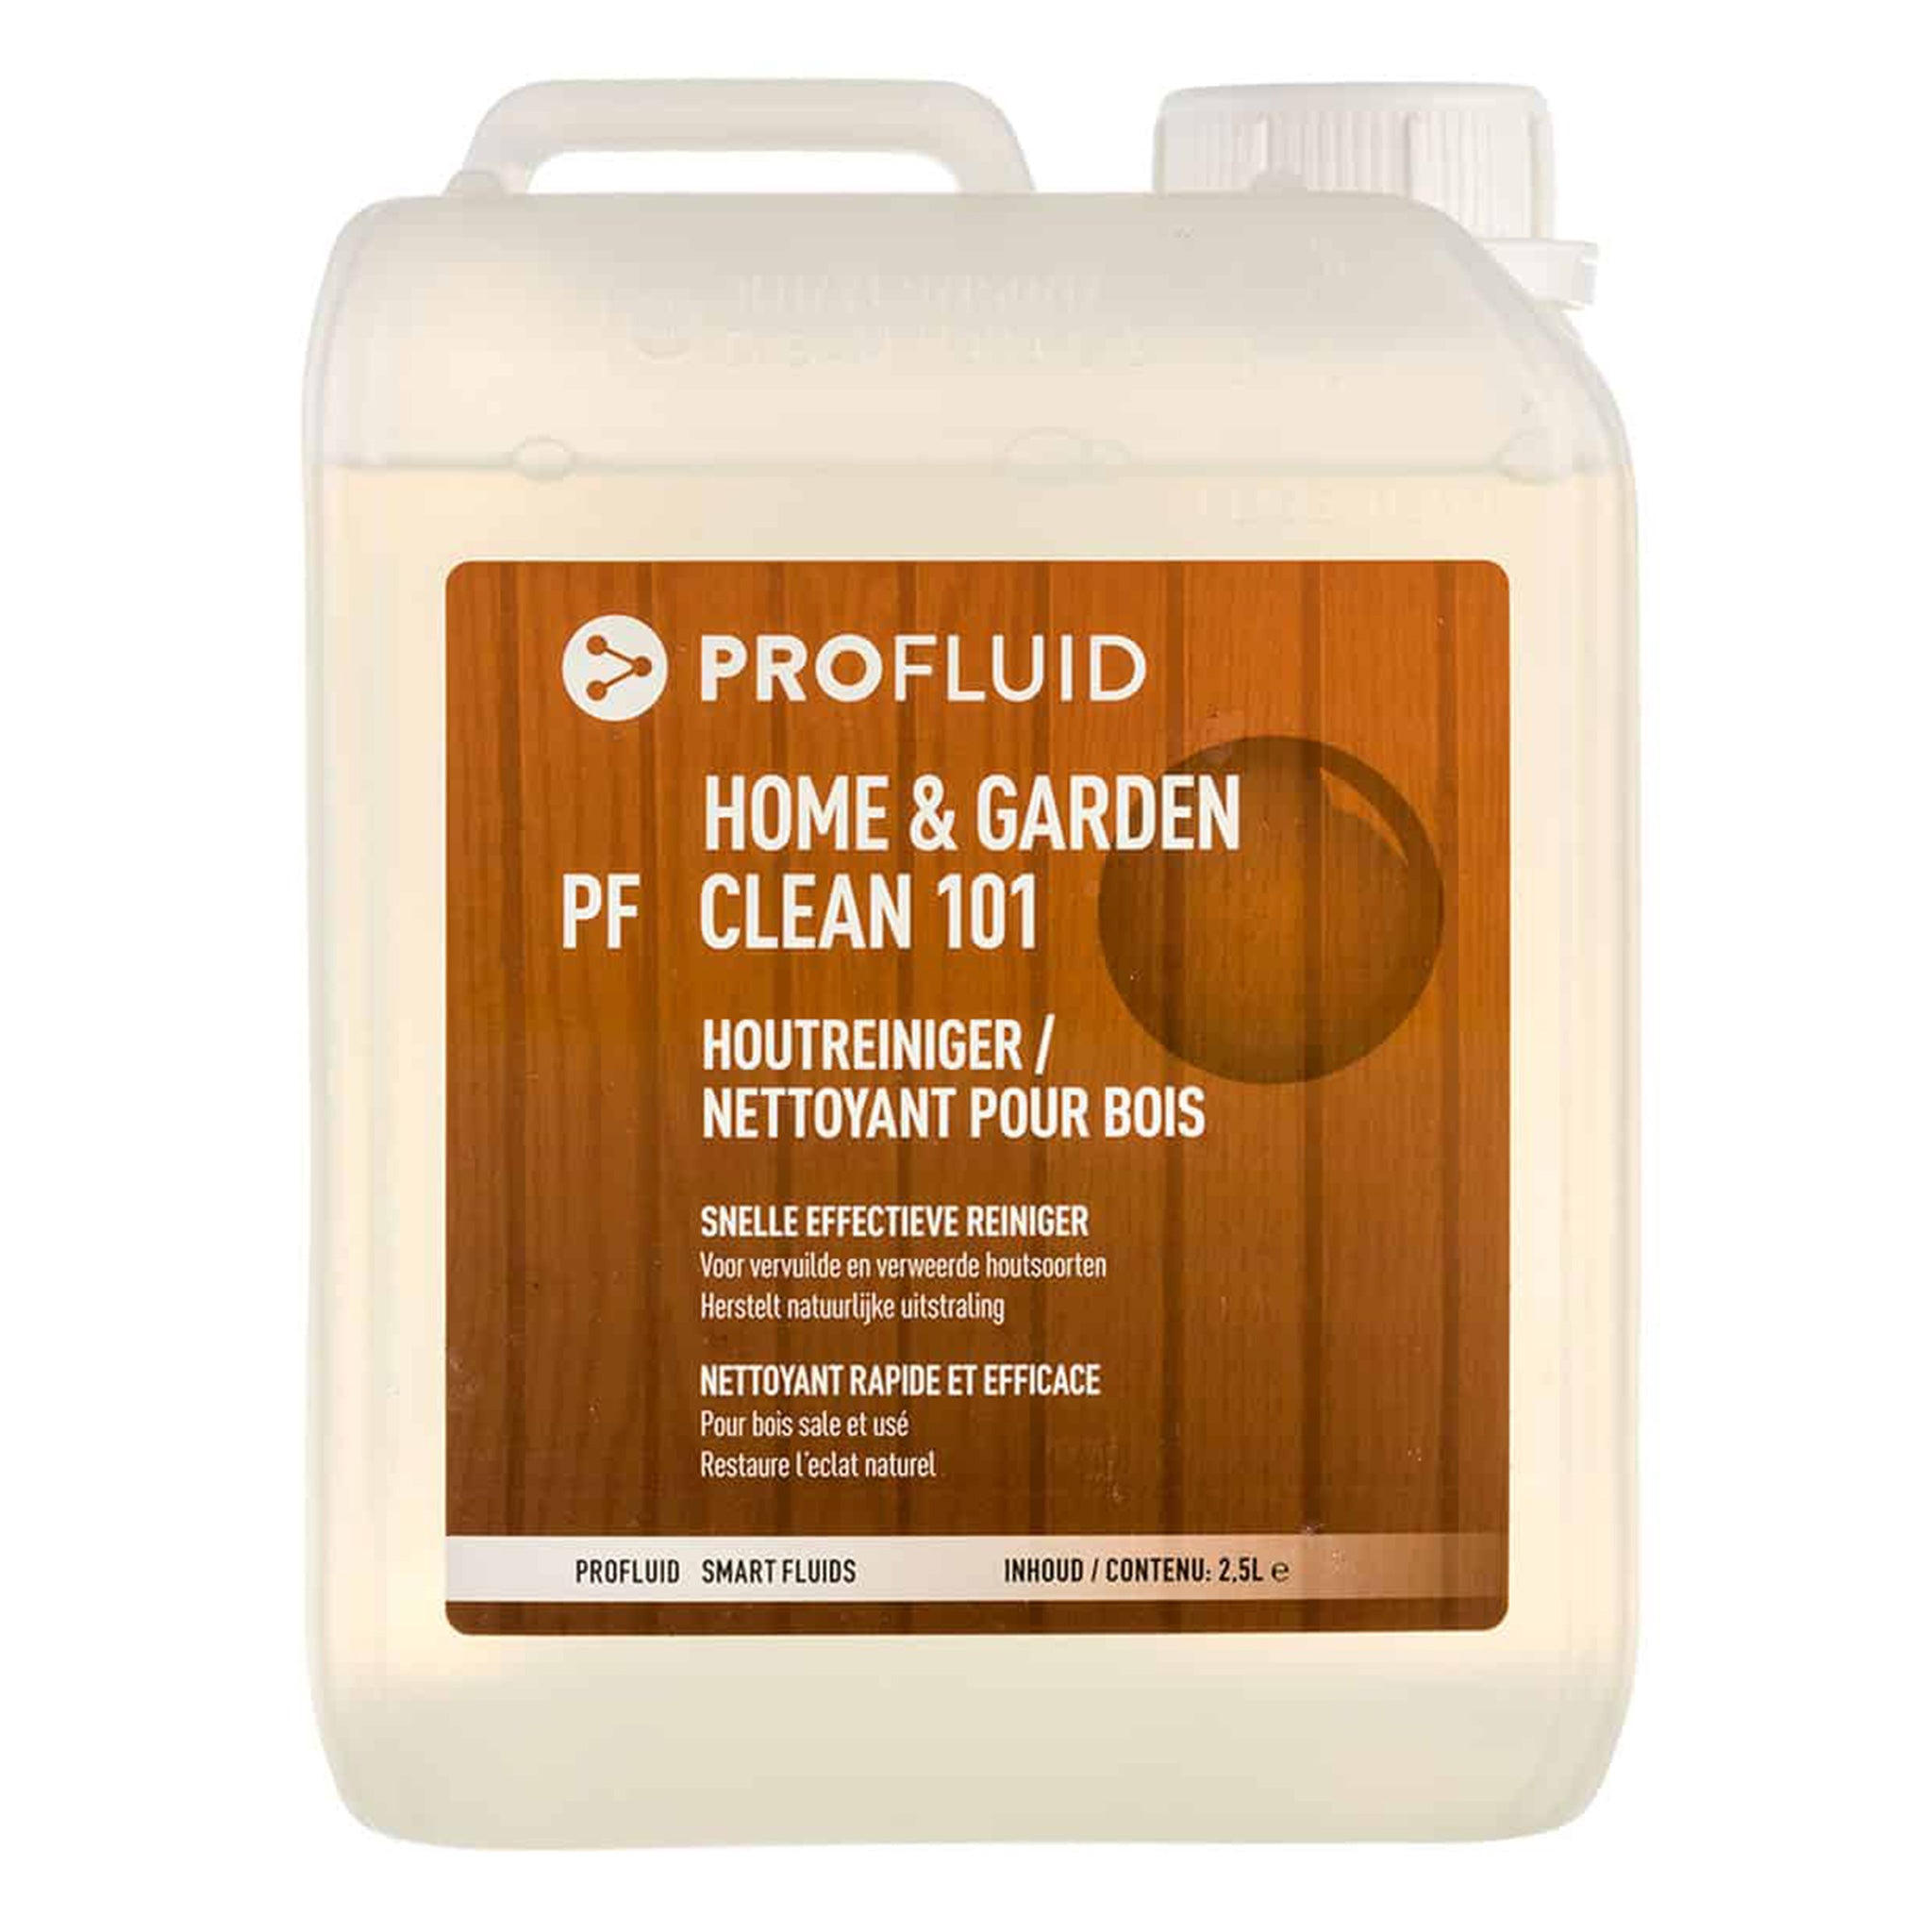 Nano Cleaner Hout PF Clean 101 - allesimpregneren.nl